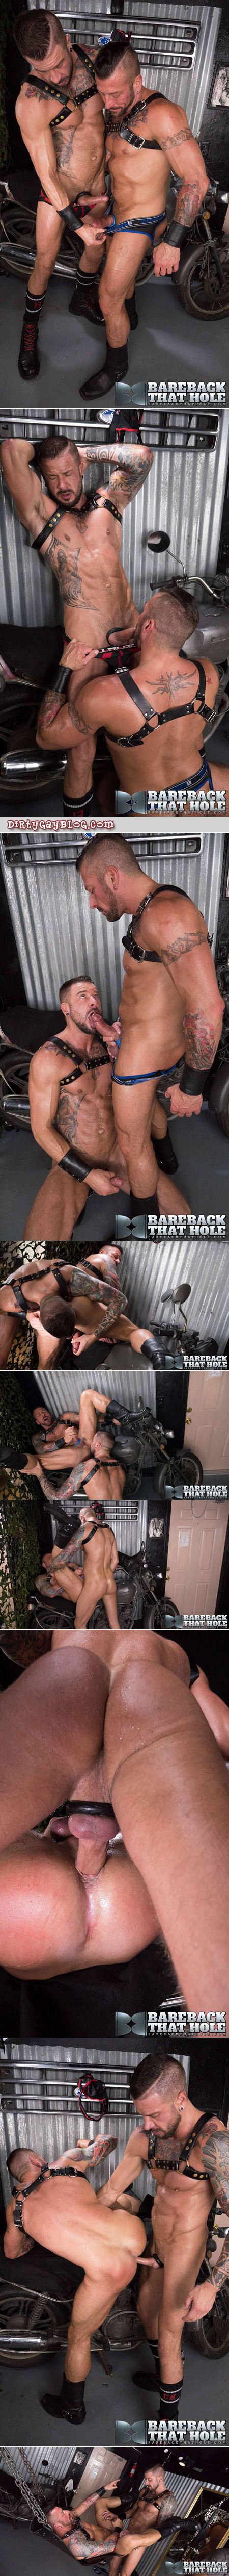 Heavily tattooed male couple fucking in a sling at the leather bar.